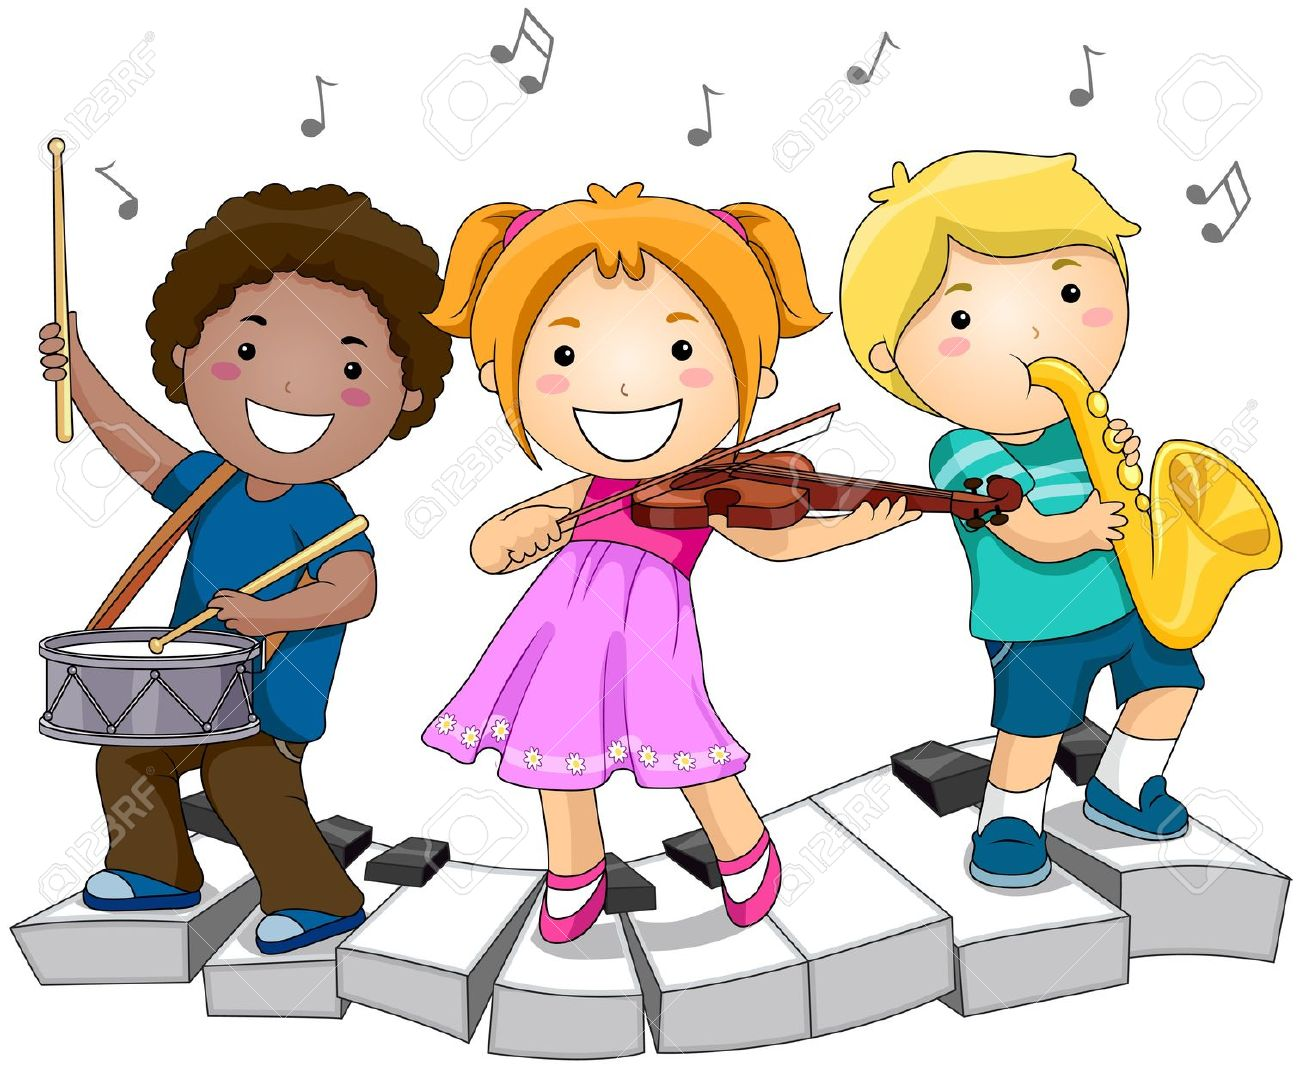 Play music clipart #10